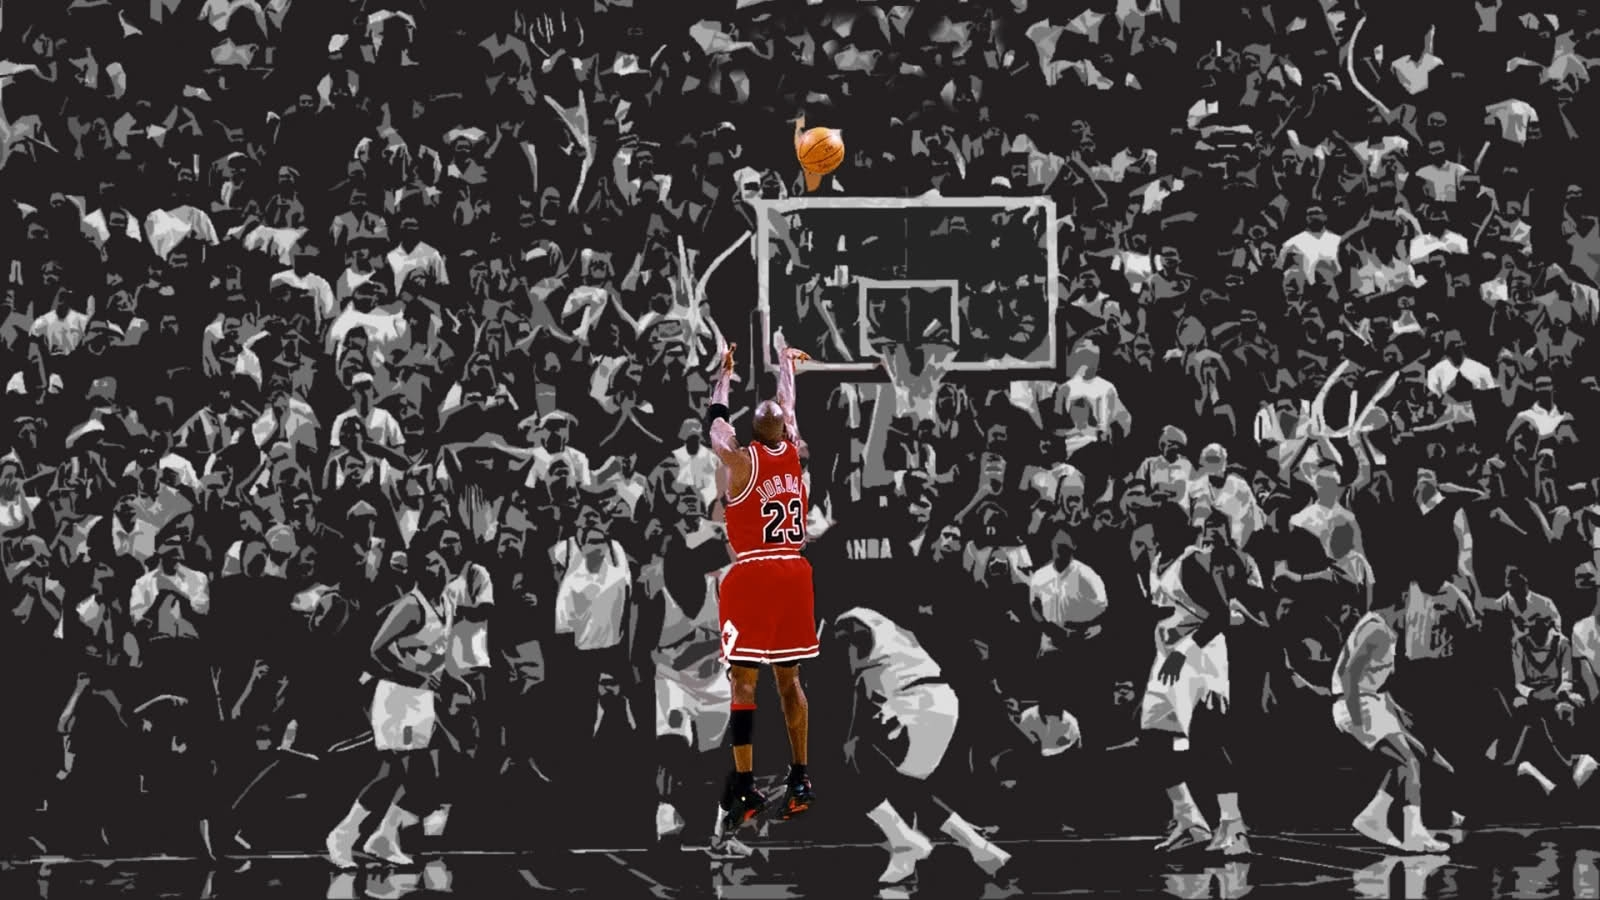 10 Best Michael Jordan Hd Wallpaper FULL HD 1920×1080 For PC Desktop